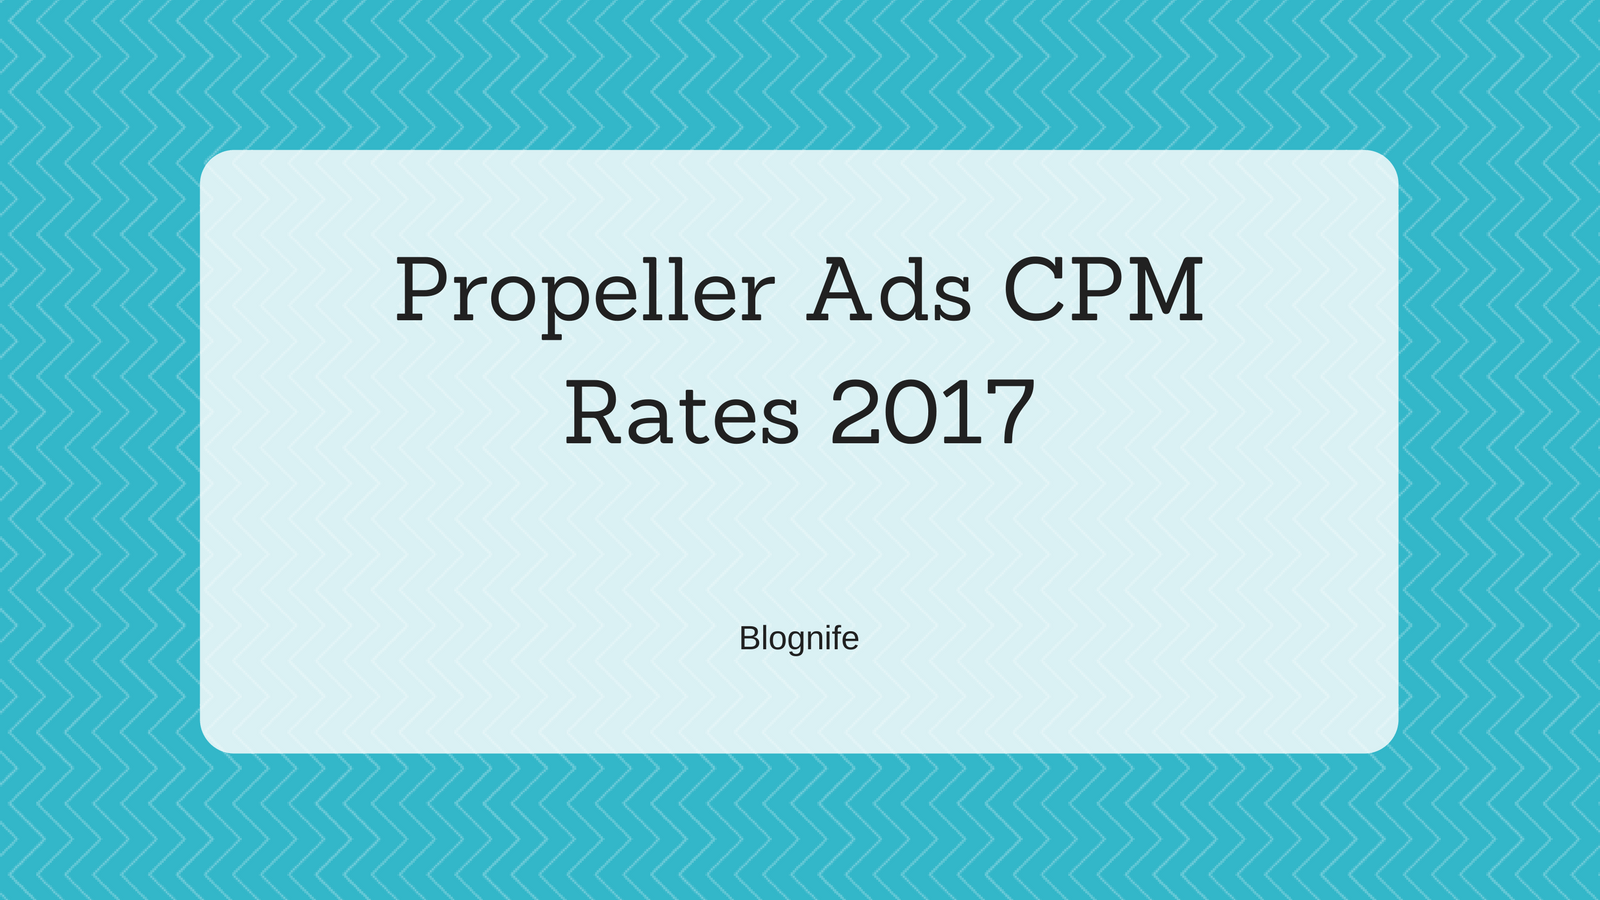 Propeller Ads CPM Rates 2019